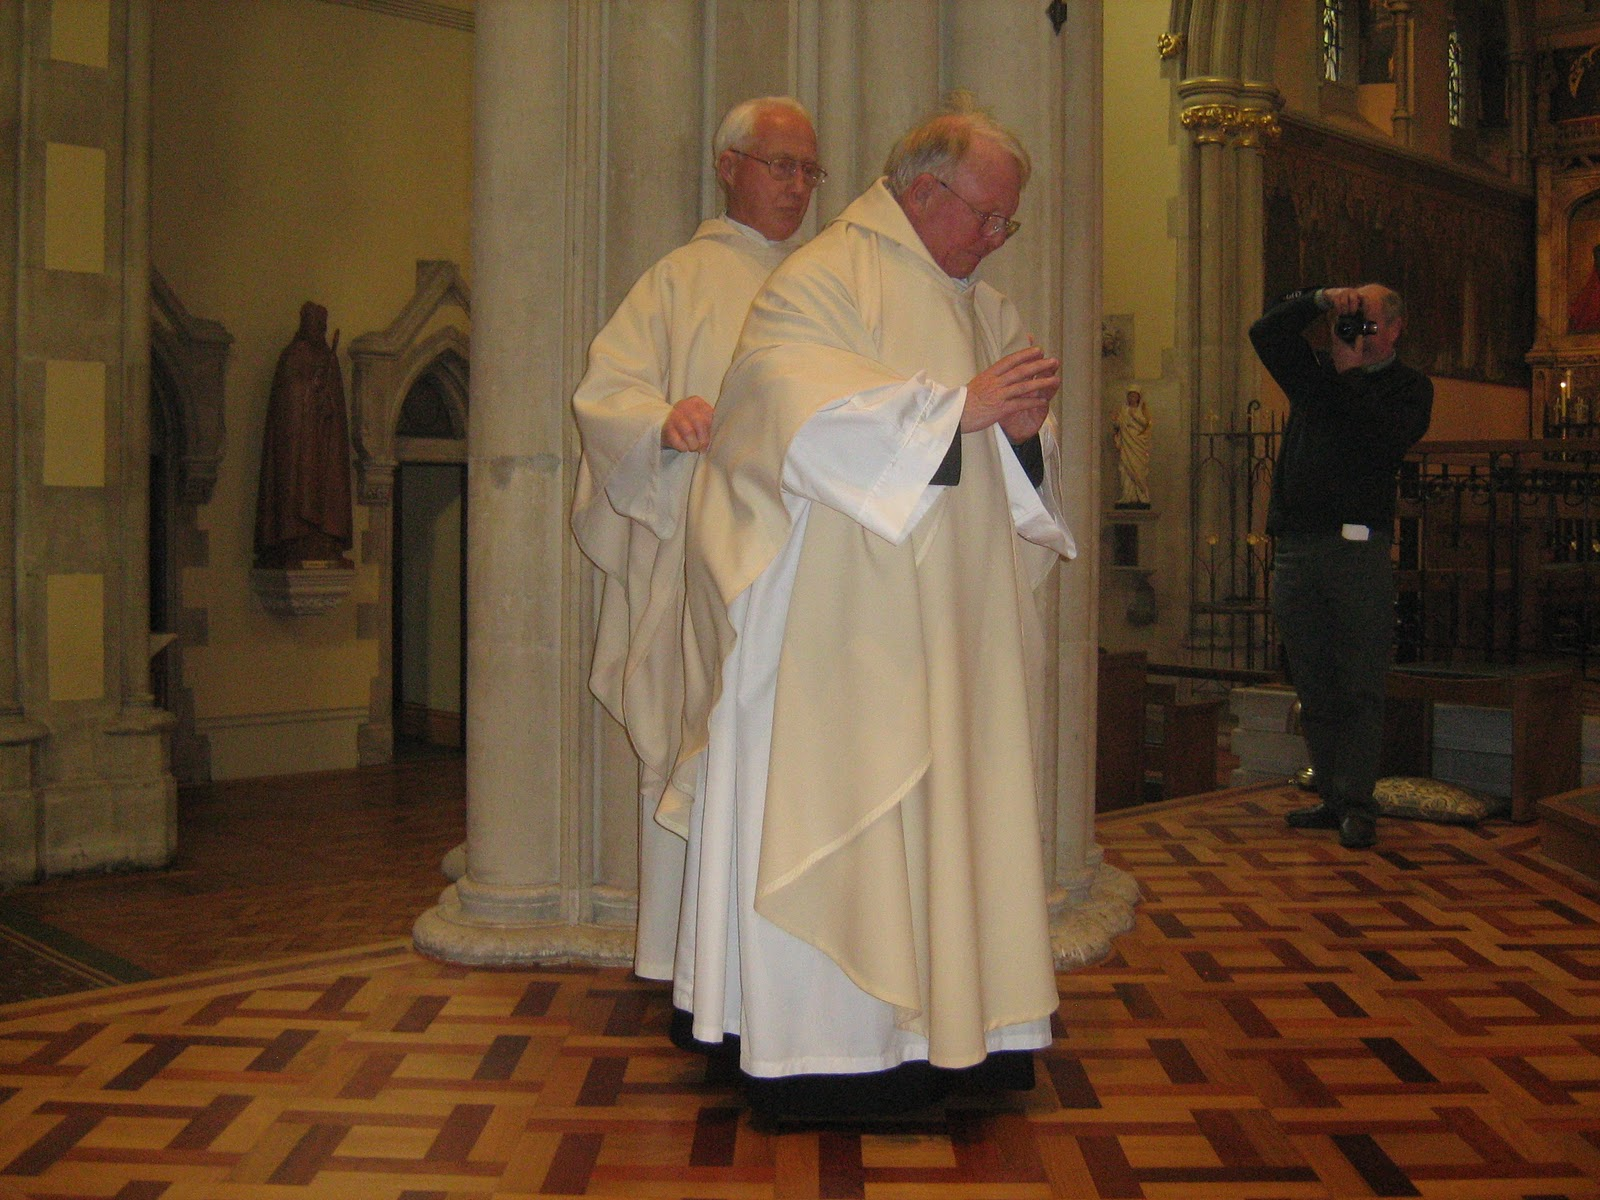 After the Laying-on of Hands he was invested with his stole and